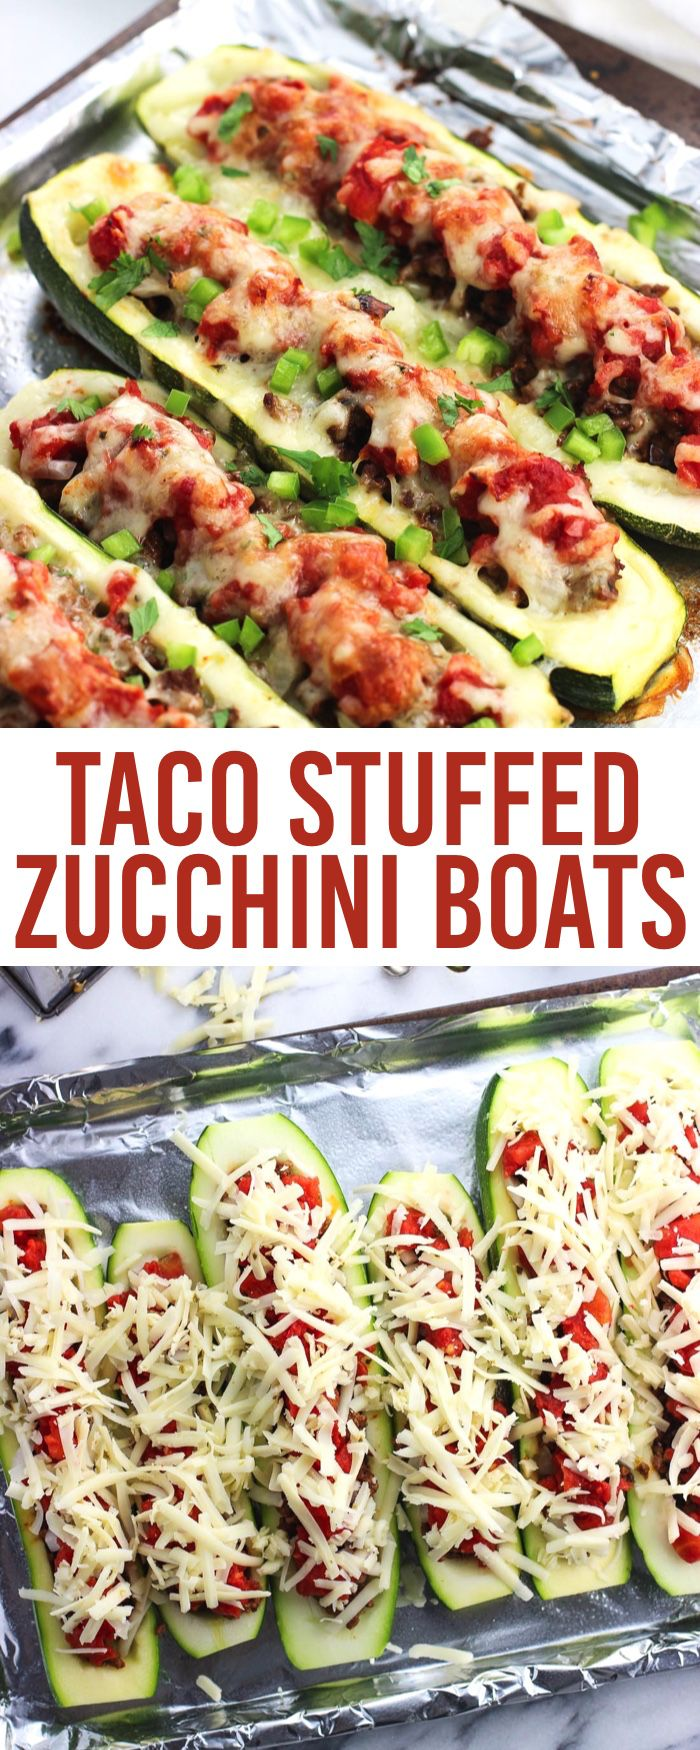 Taco-seasoned ground beef, tomatoes, and pepper jack cheese help make these taco stuffed zucchini boats a satisfying (and better for you) main dish recipe.